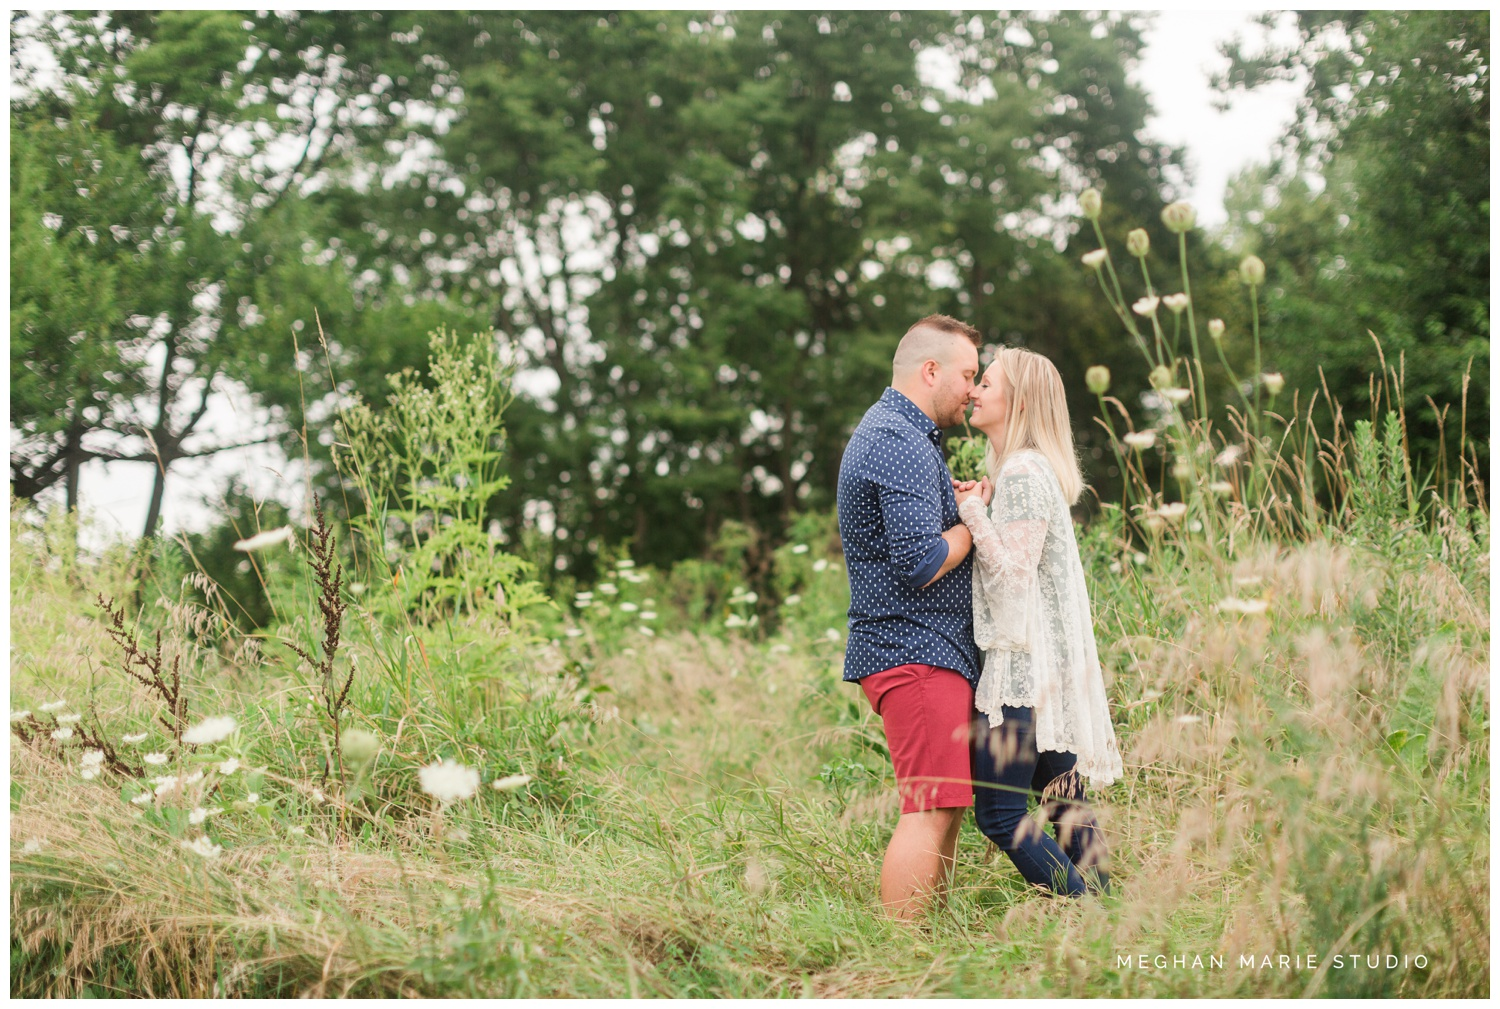 meghan marie studio ohio dayton troy photographer wedding photography engagement alex kaila family honeycreek preserve champagne downtown courthouse urban rural earth toned nature woods barn country city stone fountain elegant_0476.jpg